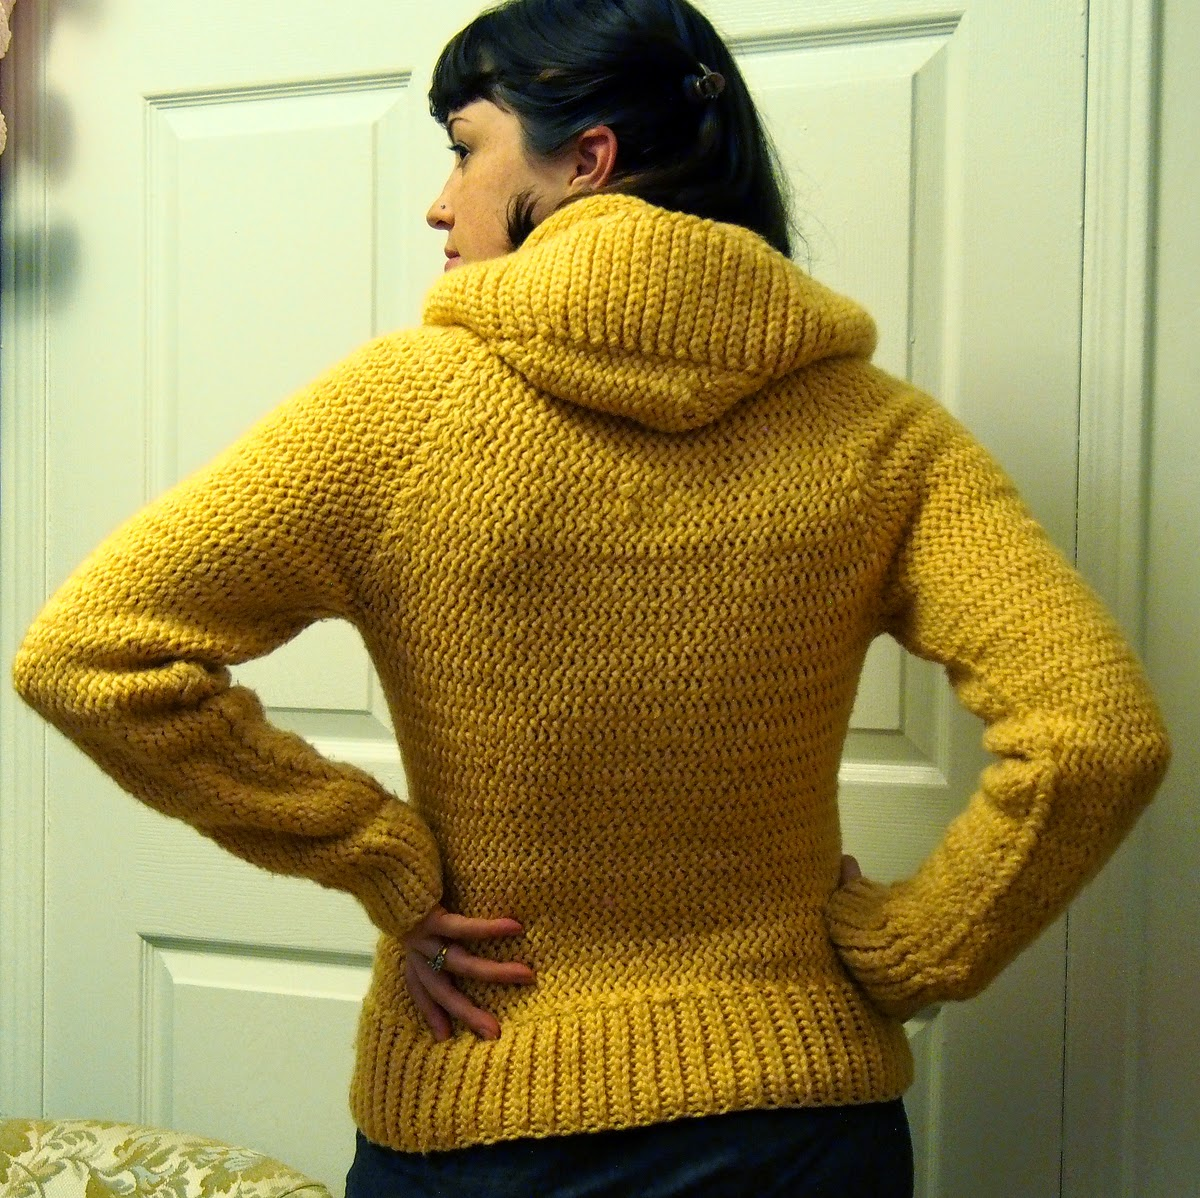 http://www.ravelry.com/projects/crazytuffie/simple-chunky-cardi